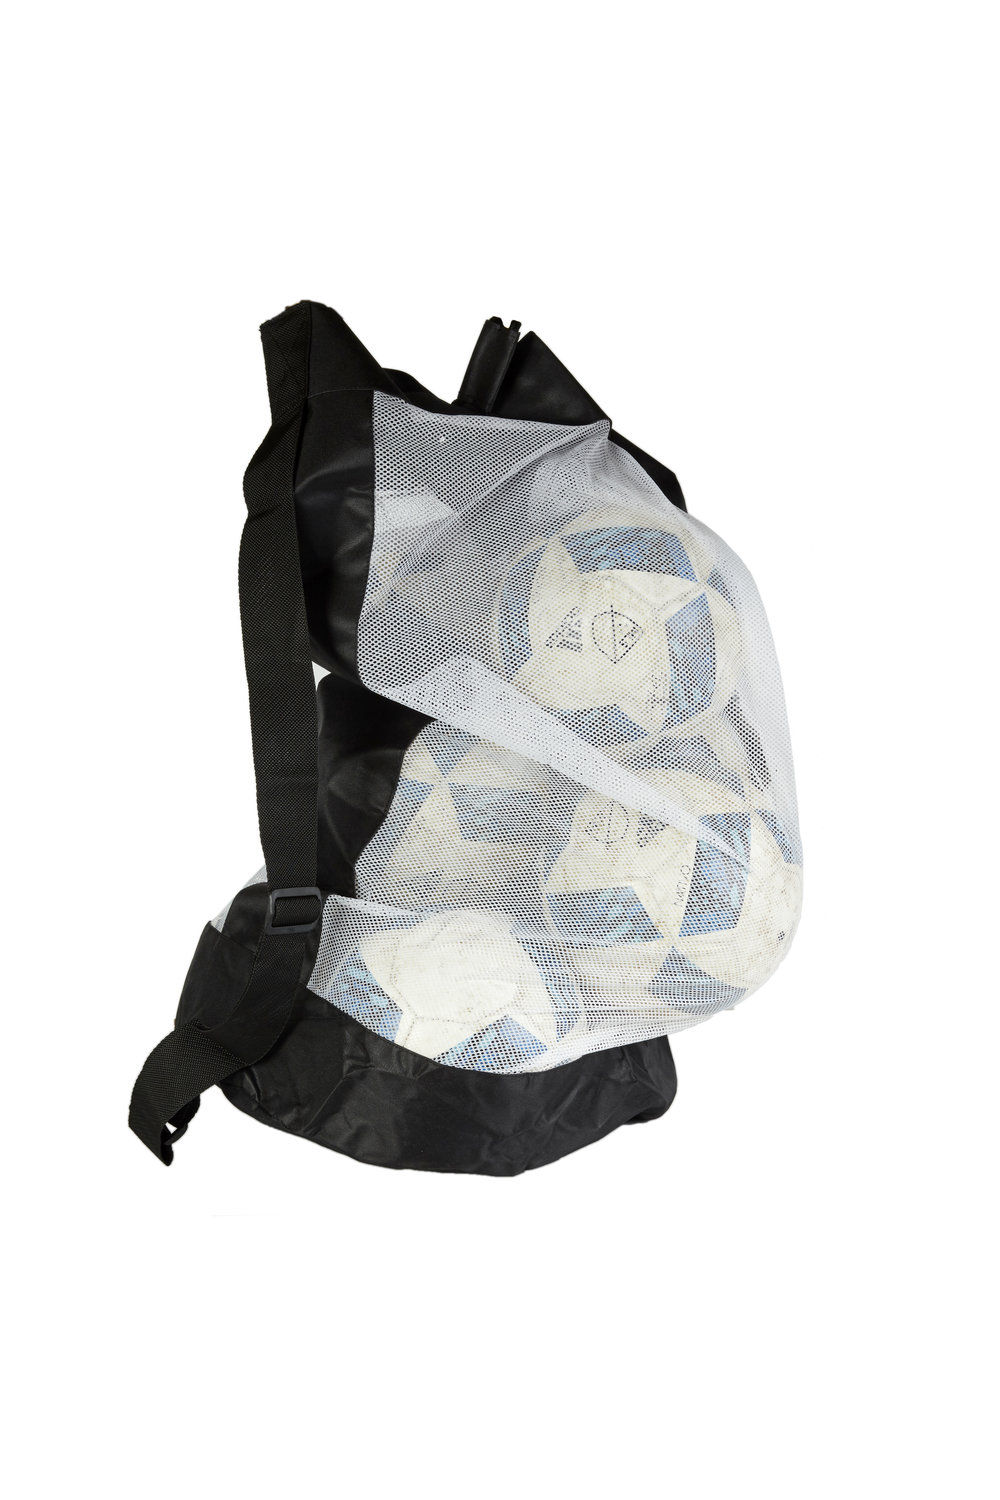 Soccer ball bag_www.worldsocceruniverse.com